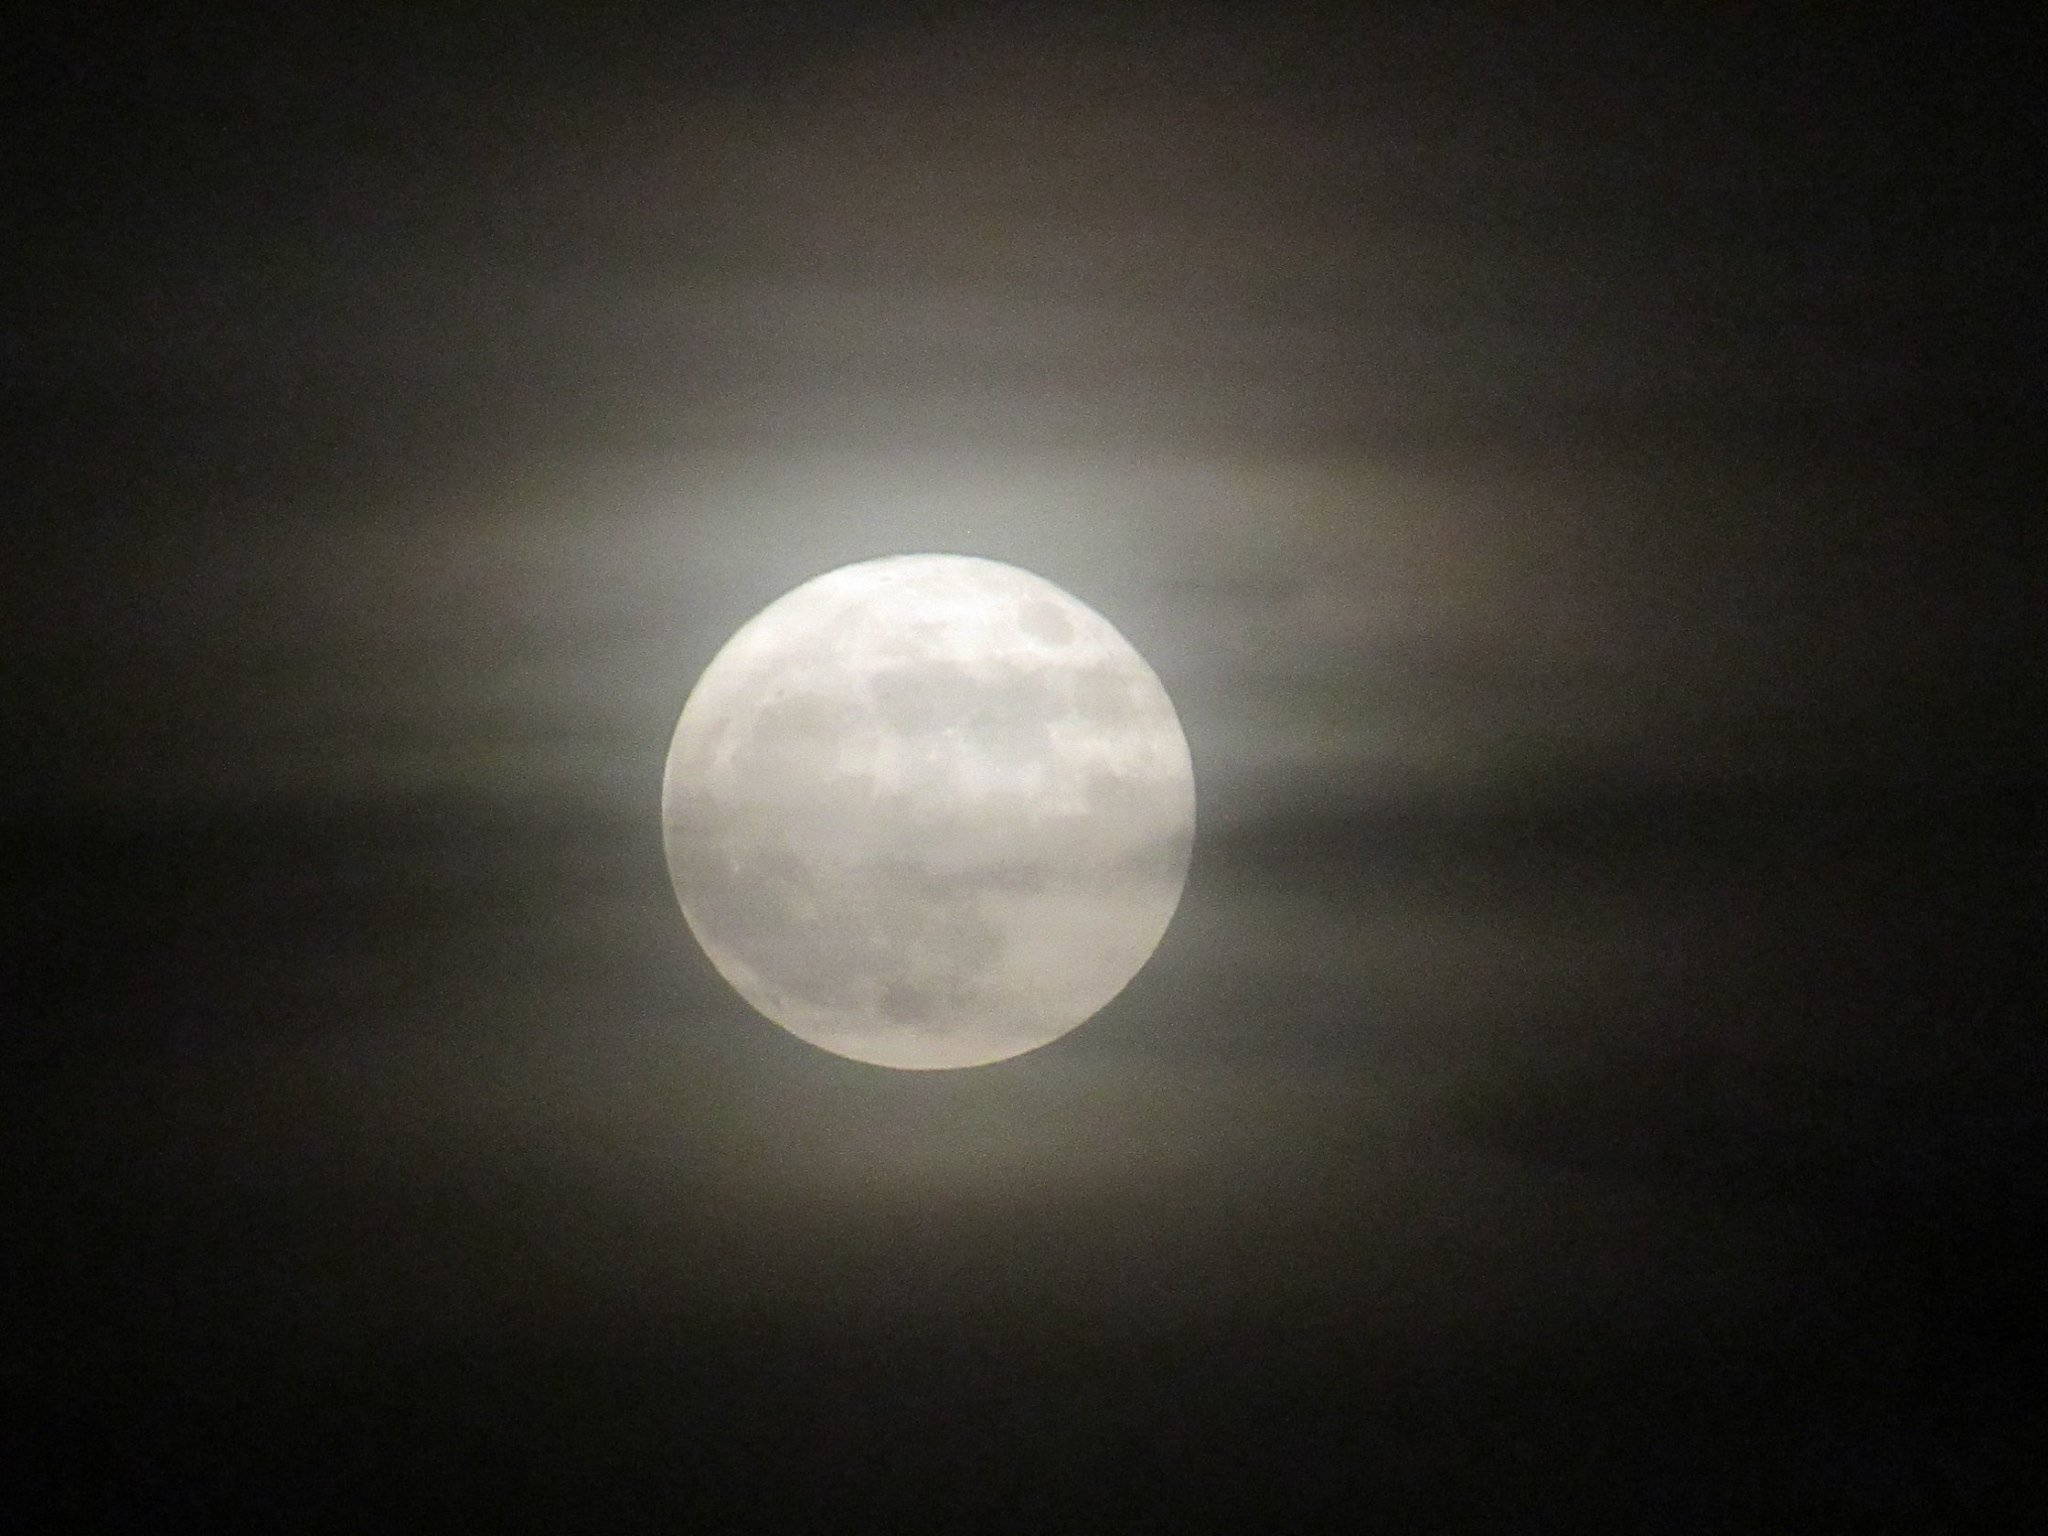 The best of the brilliant supermoon over Kamloops last night